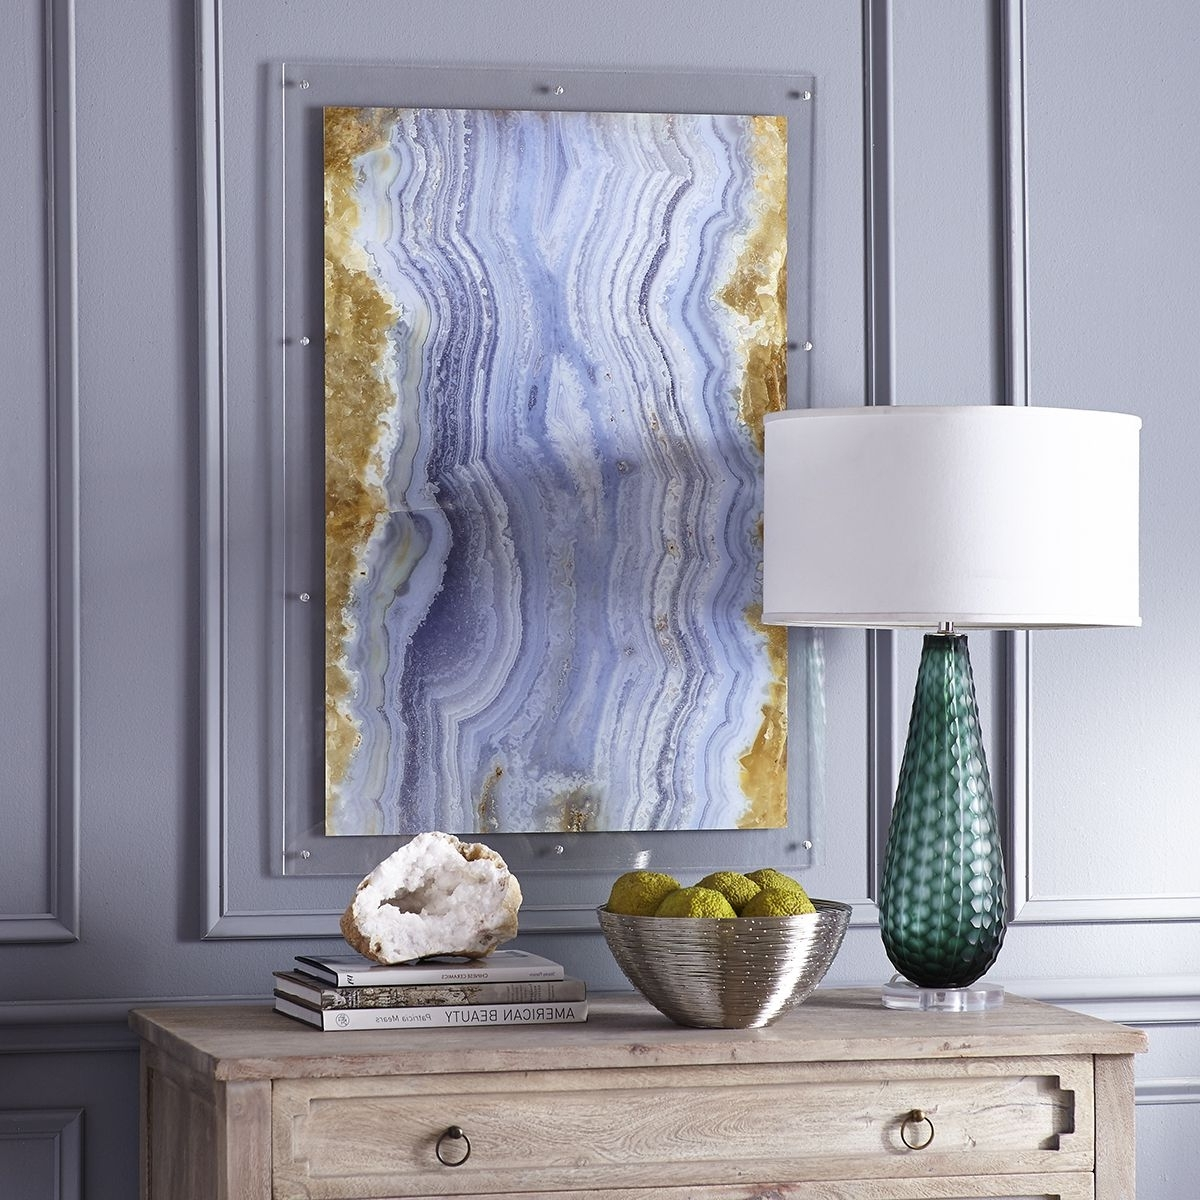 Agate, Walls And Acrylics Within Agate Wall Art (View 7 of 15)